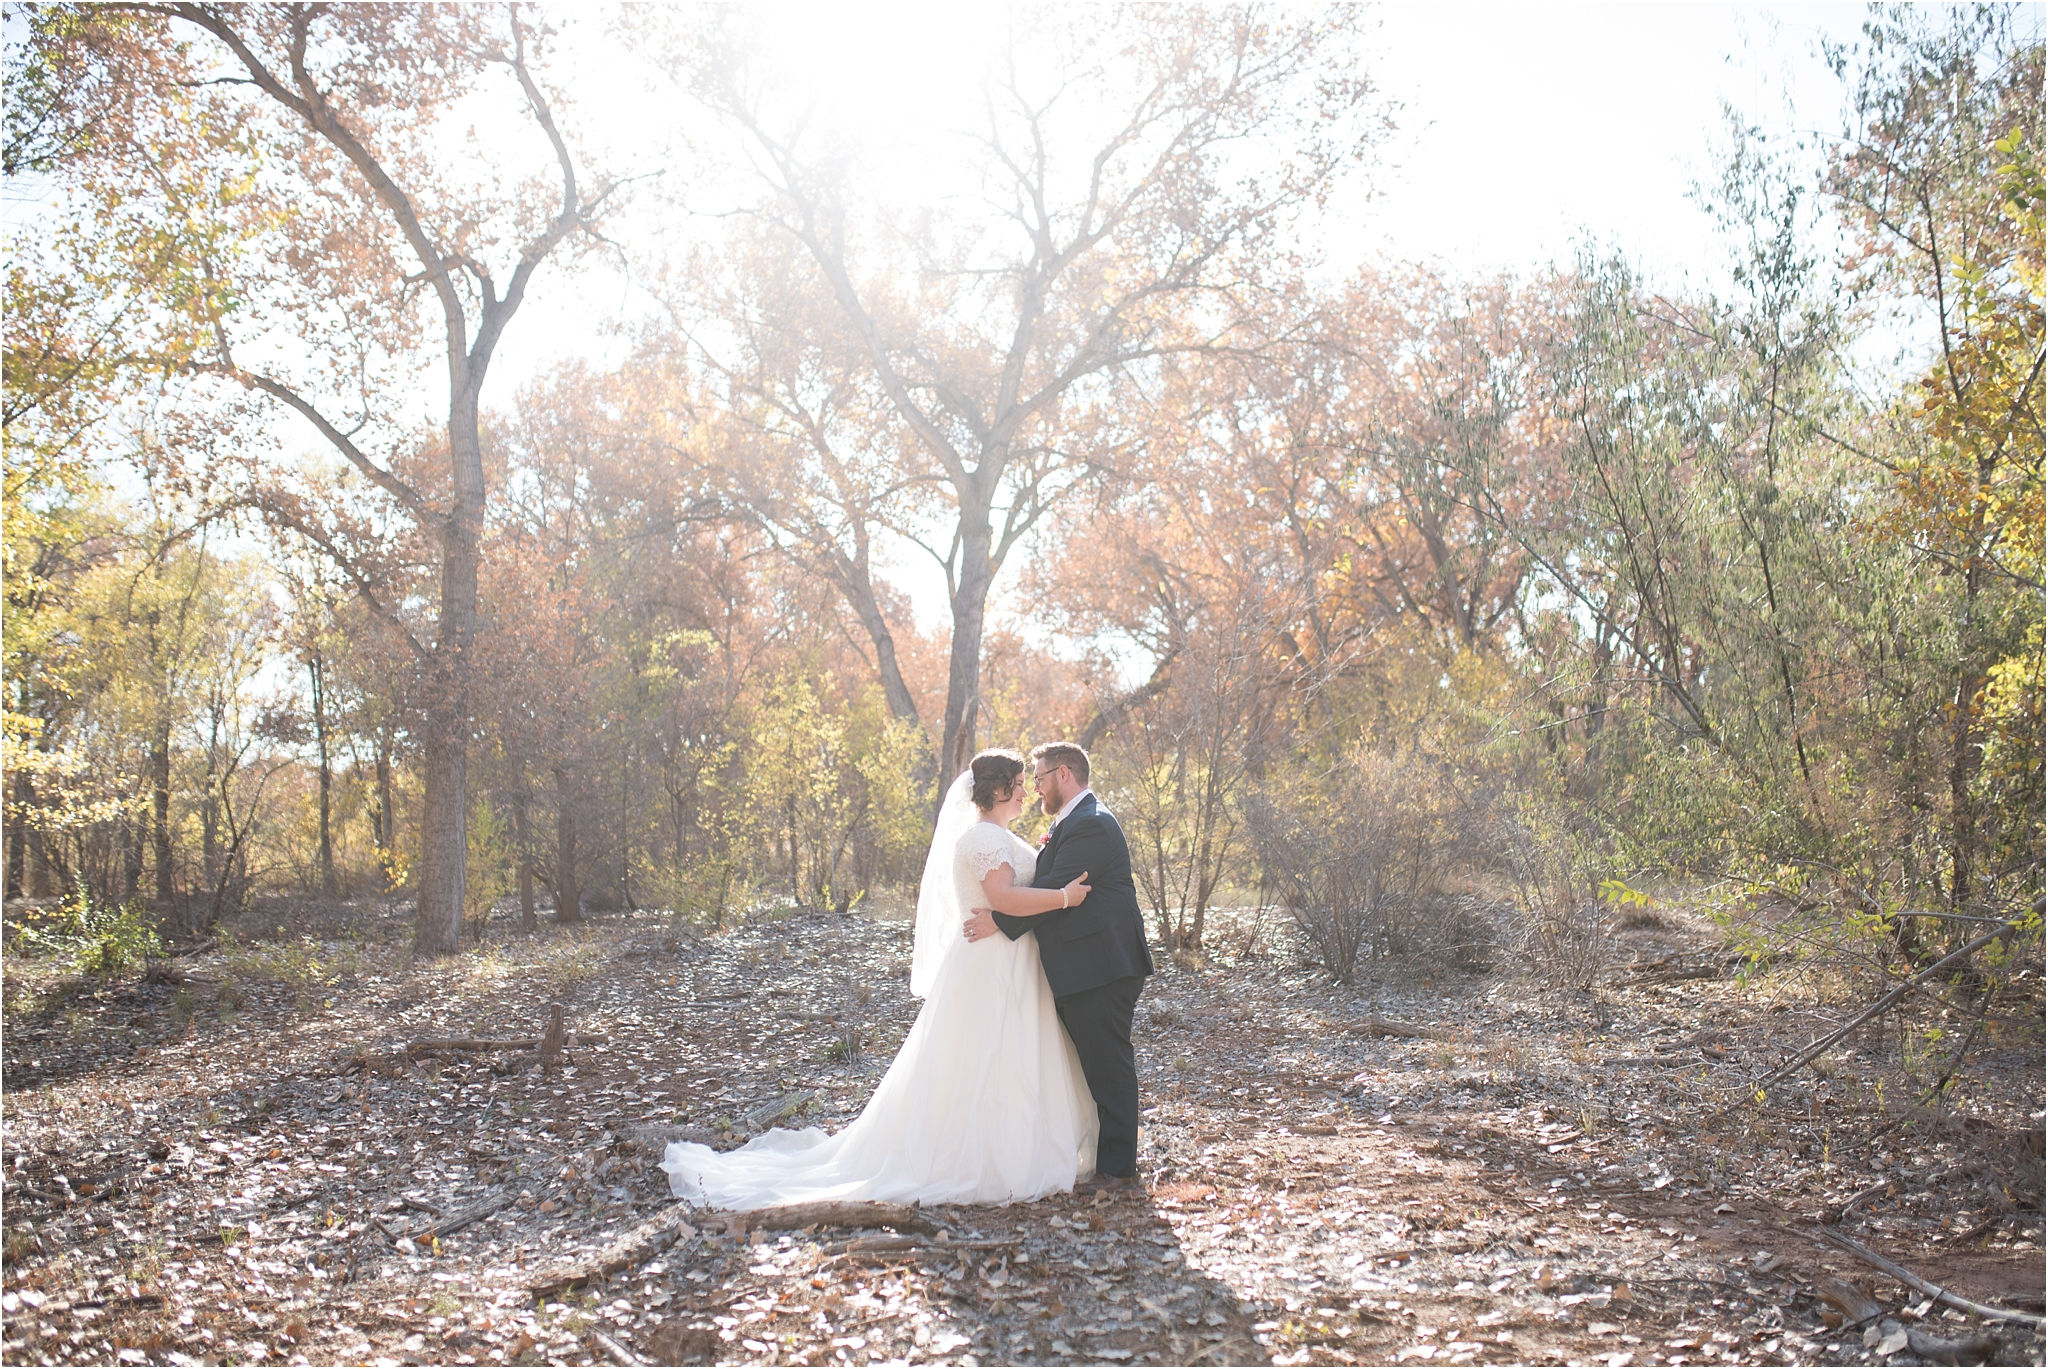 kayla kitts photography - albuquerque wedding photographer - new mexico wedding photographer - desination wedding photographer - cabo wedding photographer_0018.jpg